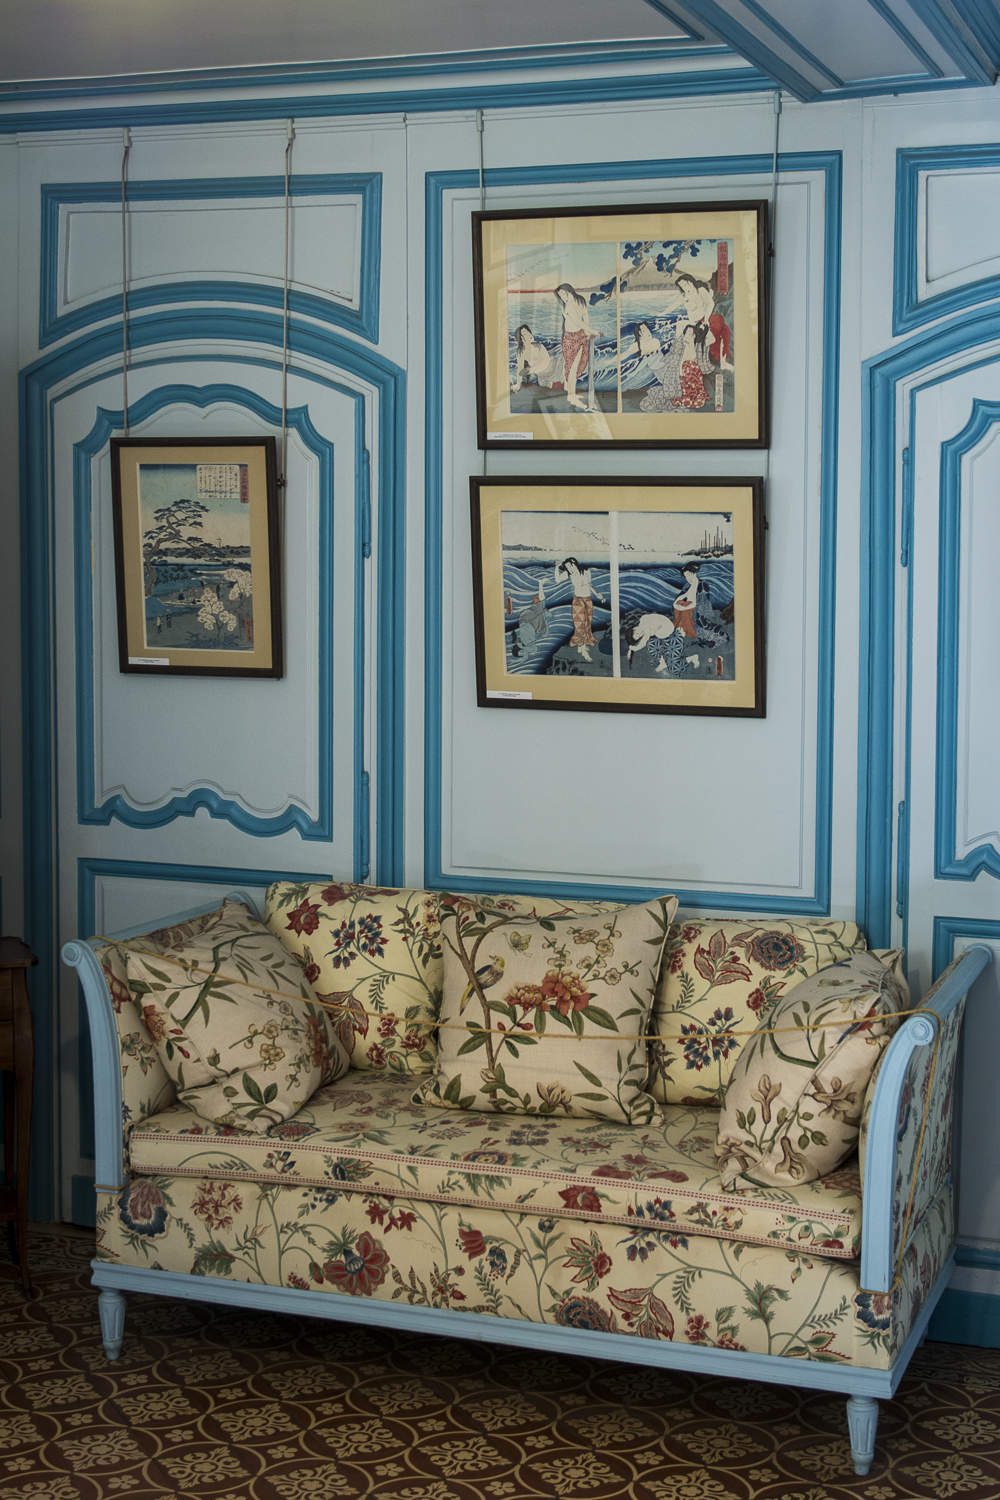 MONET'S HOUSE INTERIOR - PHOTO: ALEXANDER J.E. BRADLEY - NIKON D7100 - 24-70MM F/2.8 @ 32MM - F/2.8 - 1/40 - ISO 400